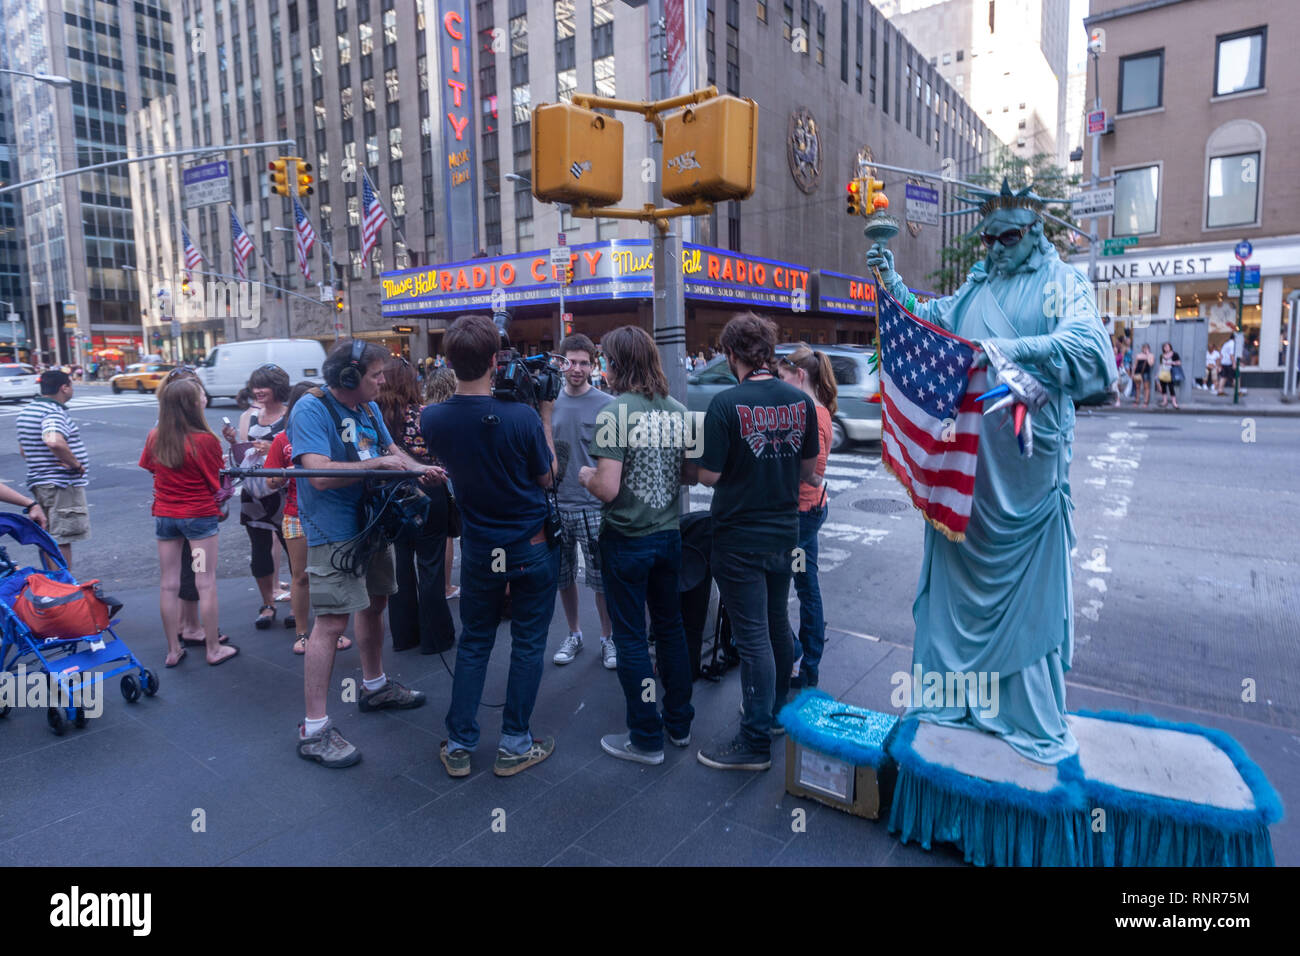 Cameraman interviewing and a mime street performer depicting the Statue of Liberty in New York City Times Square, New York City, USA Stock Photo